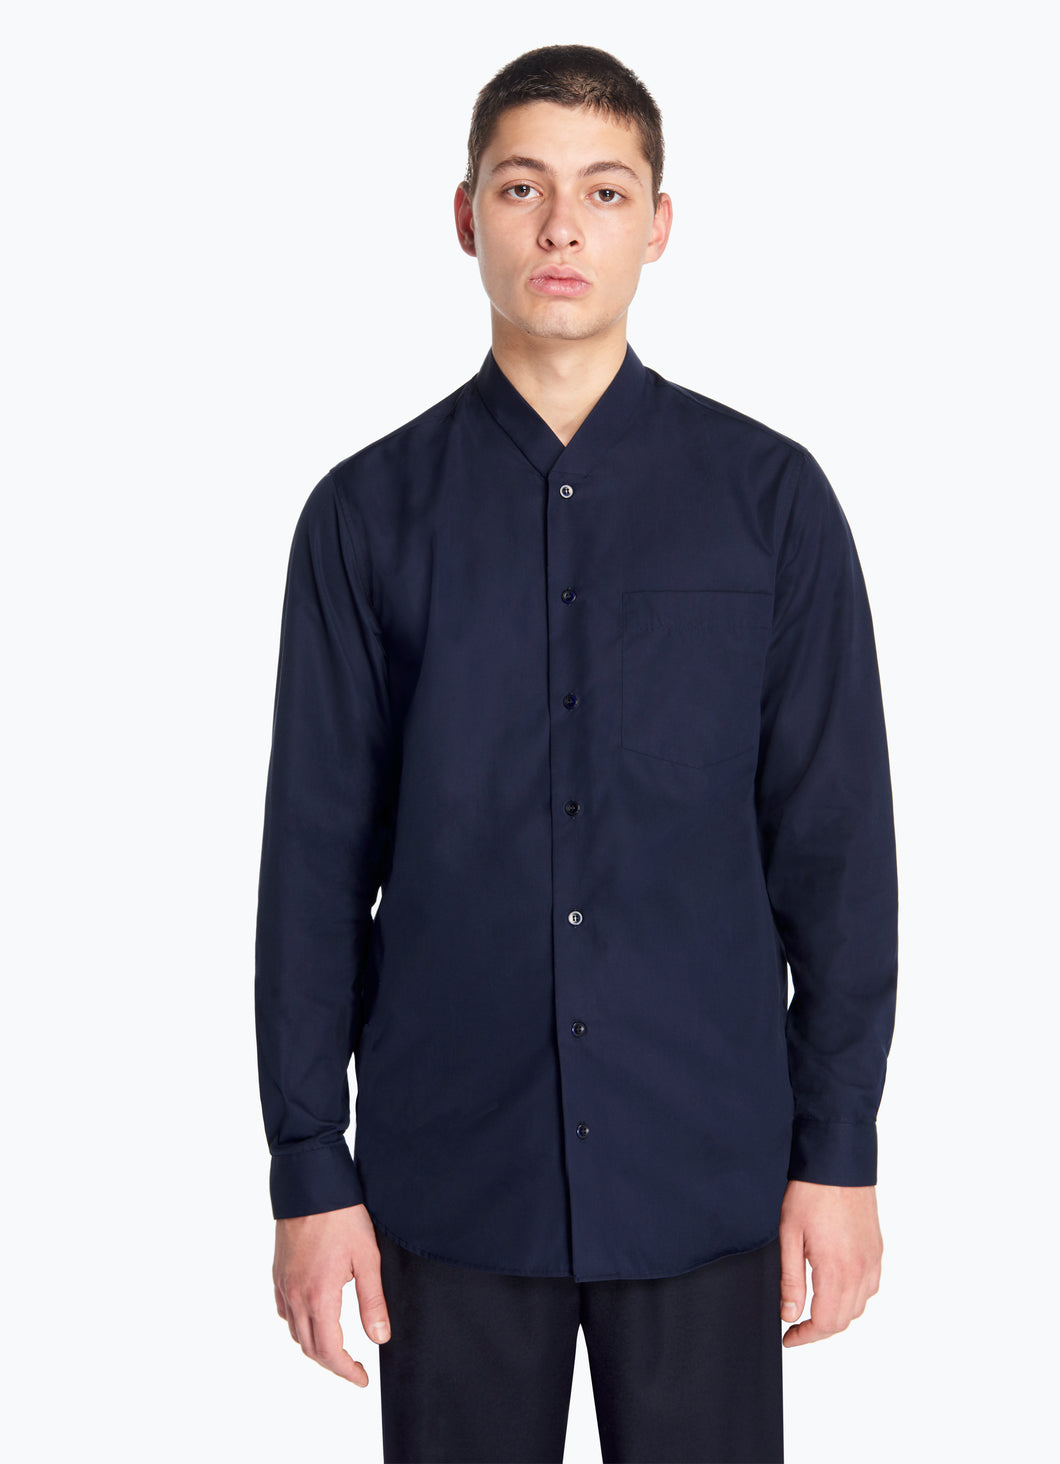 False Collar Shirt in Navy Blue Poplin